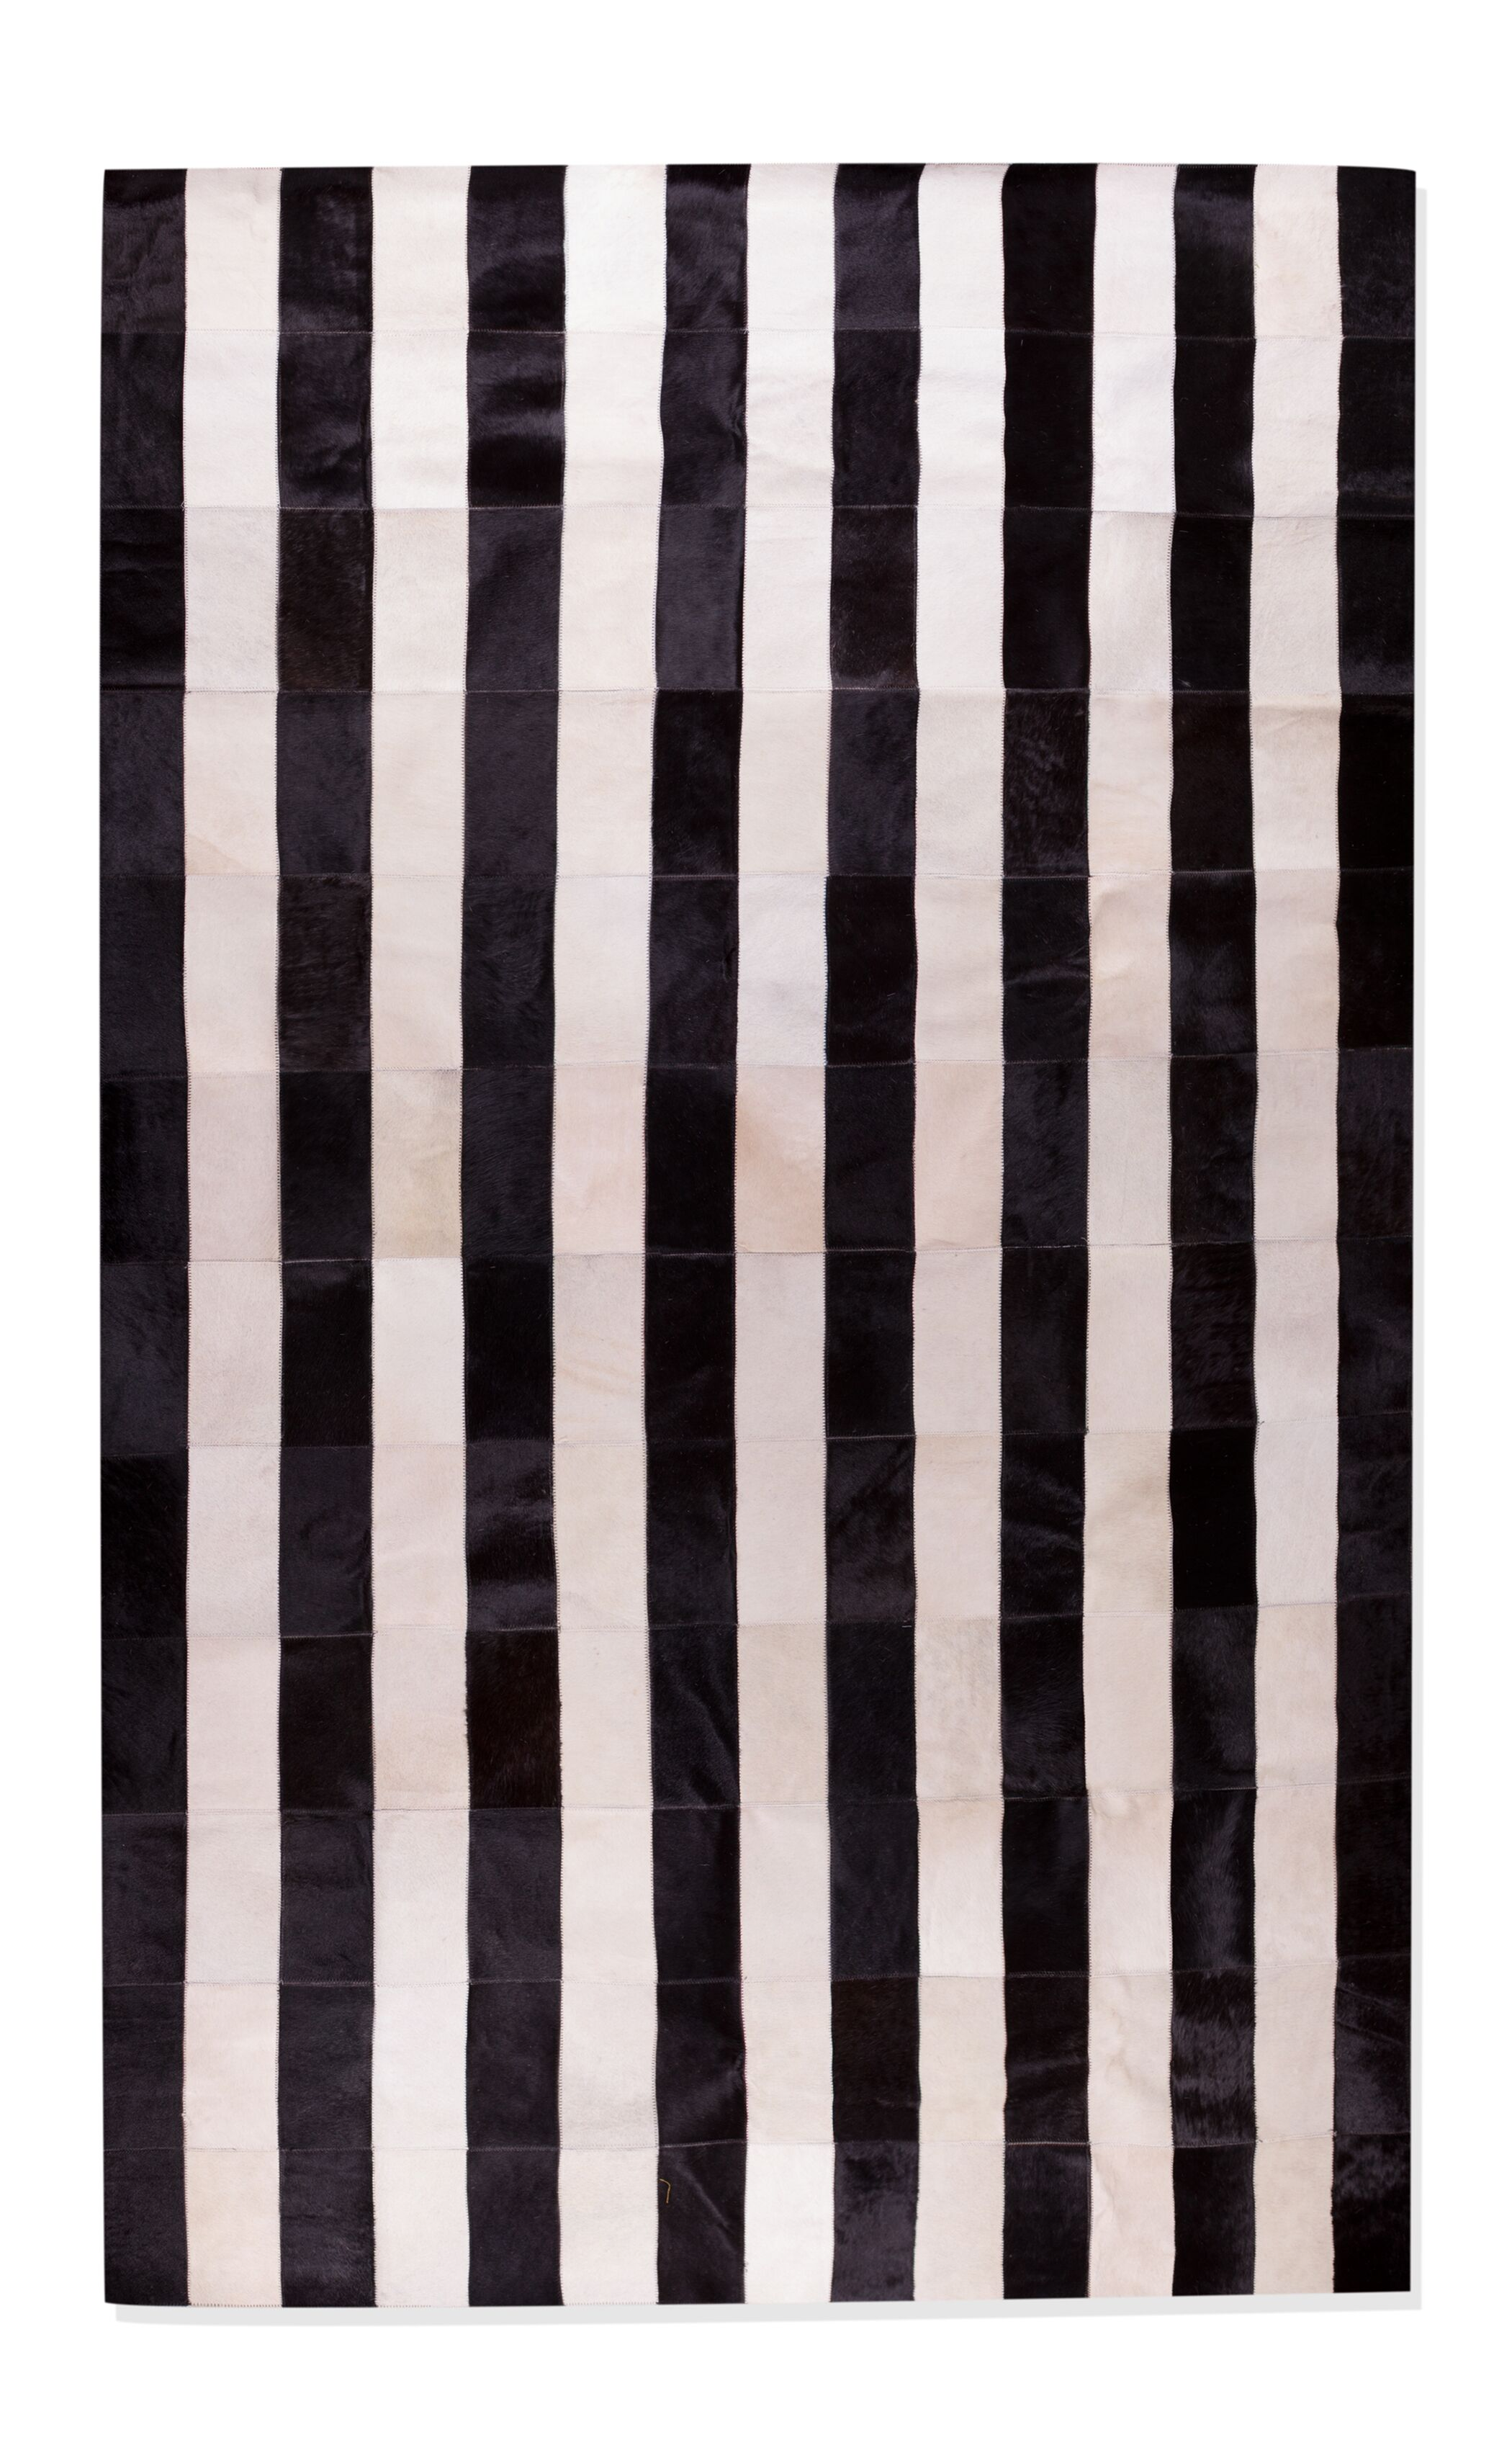 Darshan Stitch Striped Hand-Woven Cowhide Black/White Area Rug Rug Size: Rectangle 5' x 8'